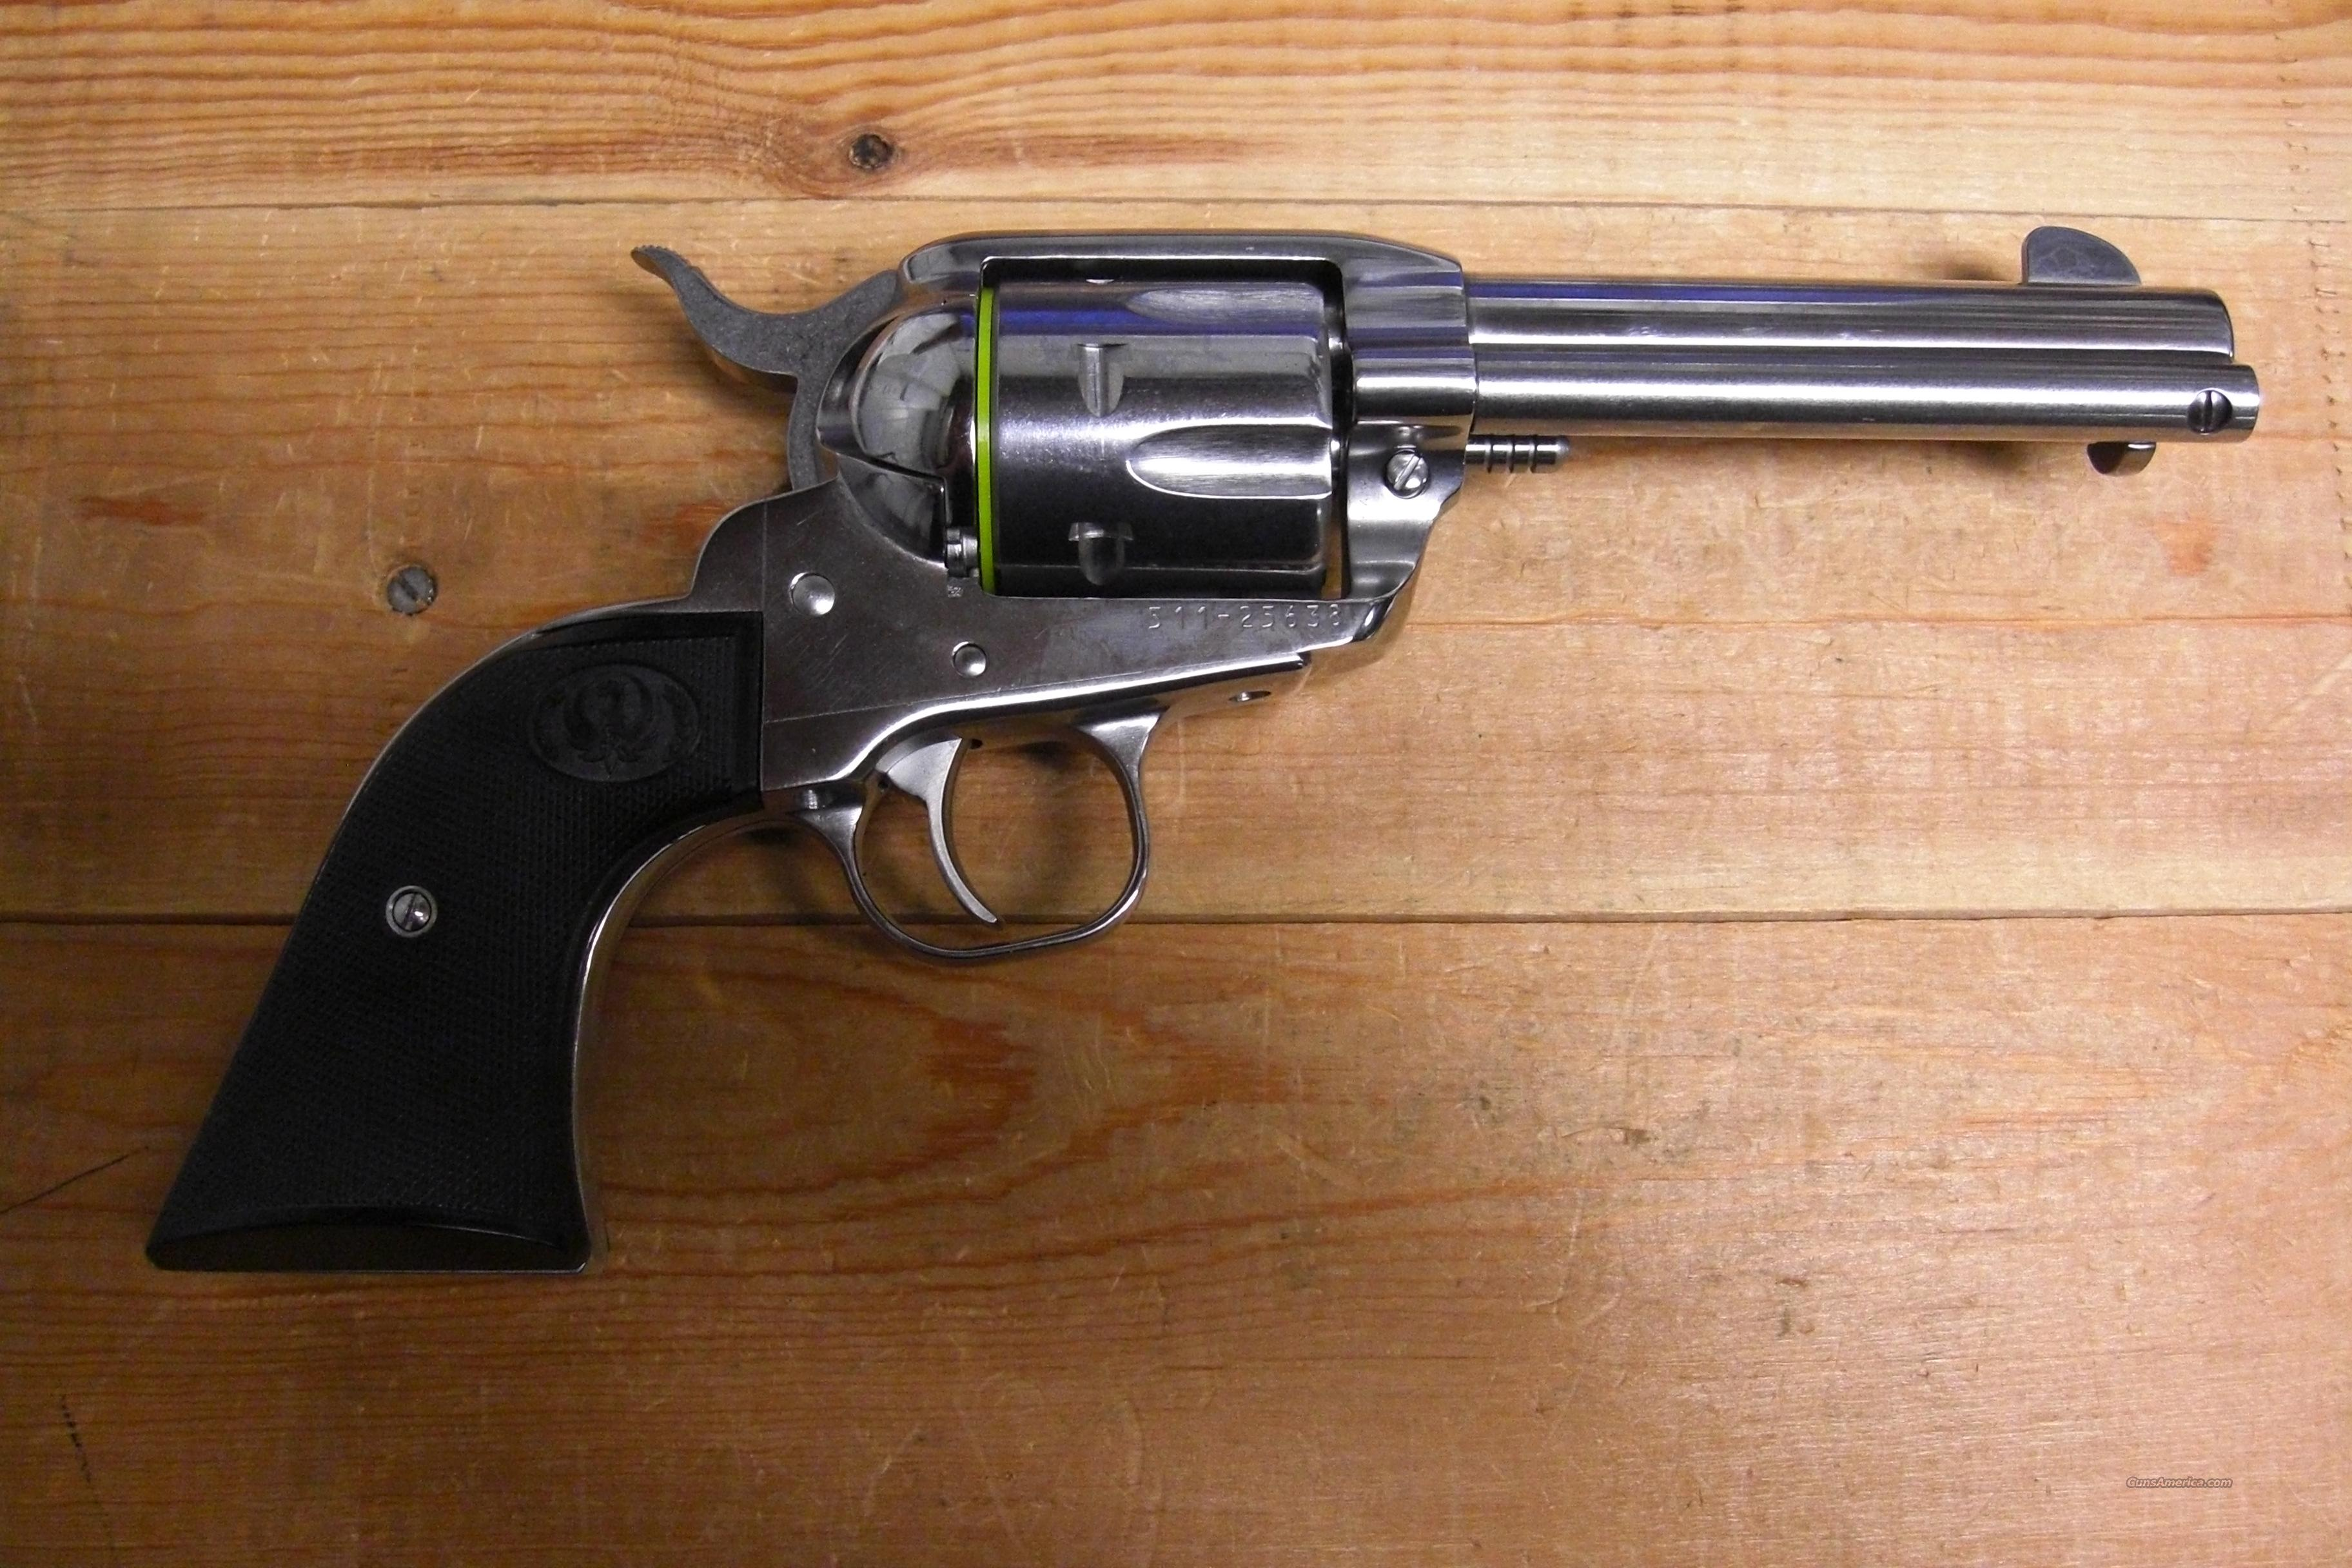 New Vaquero  w/stainless finish  Guns > Pistols > Ruger Single Action Revolvers > Cowboy Action